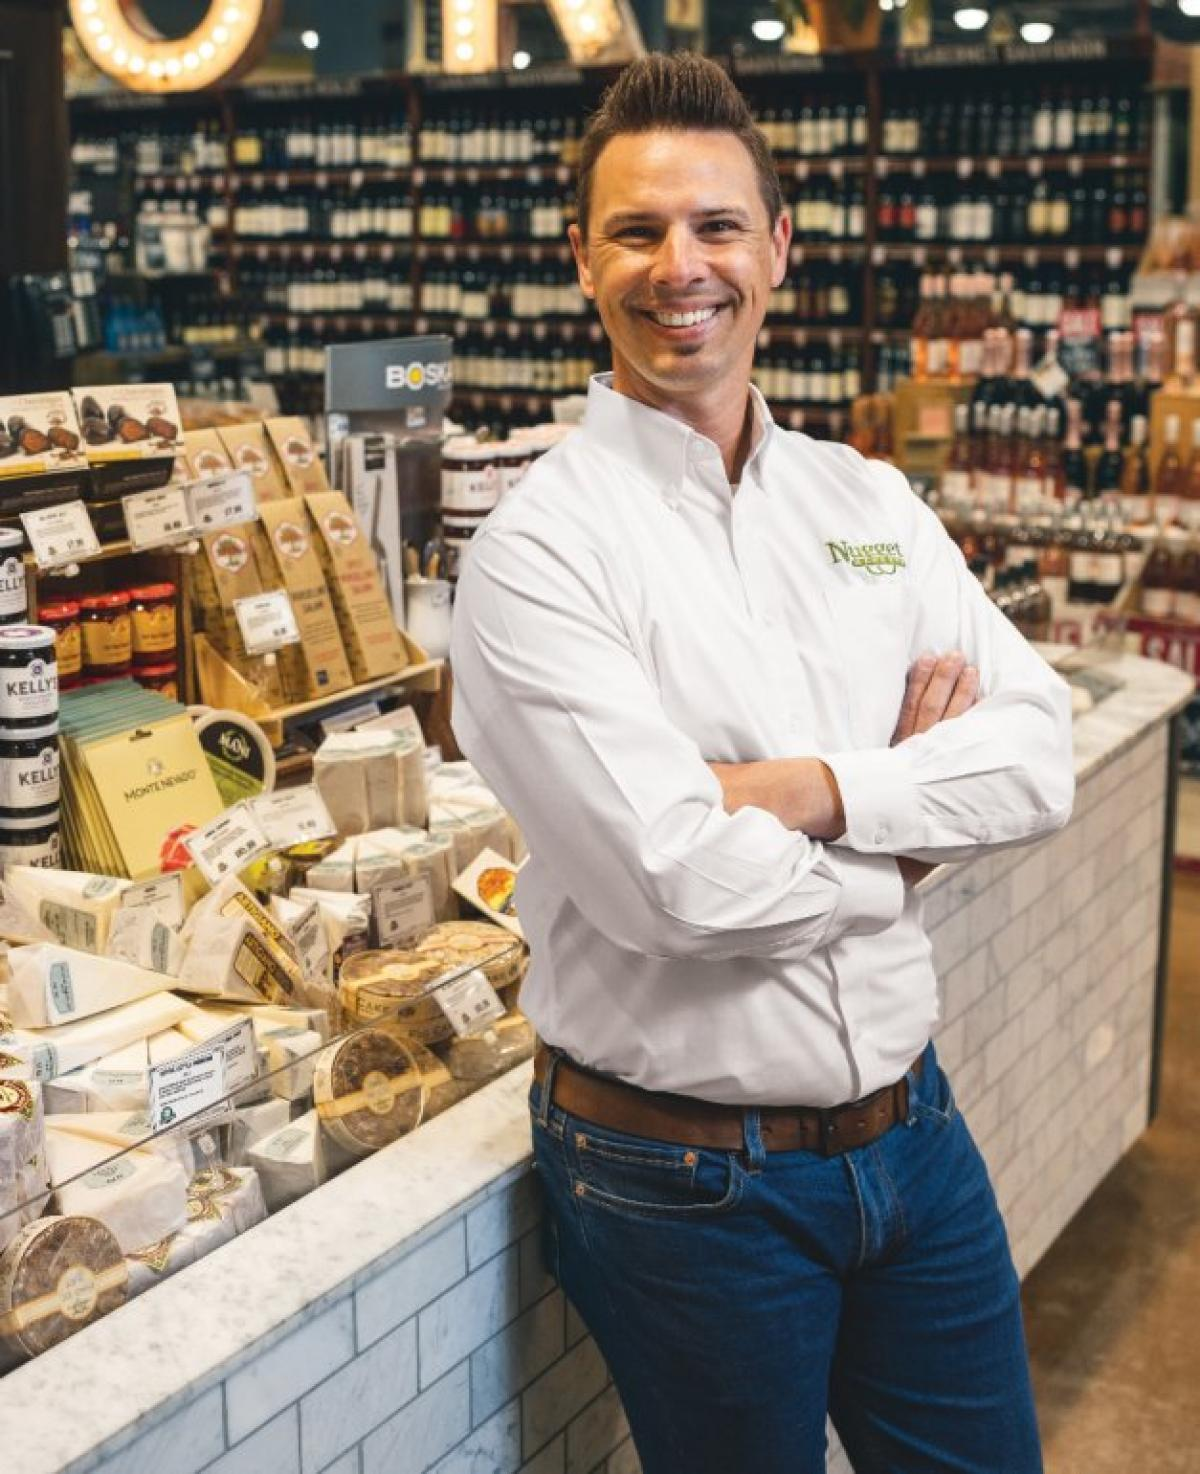 Jeremy Patin standing at cheese counter